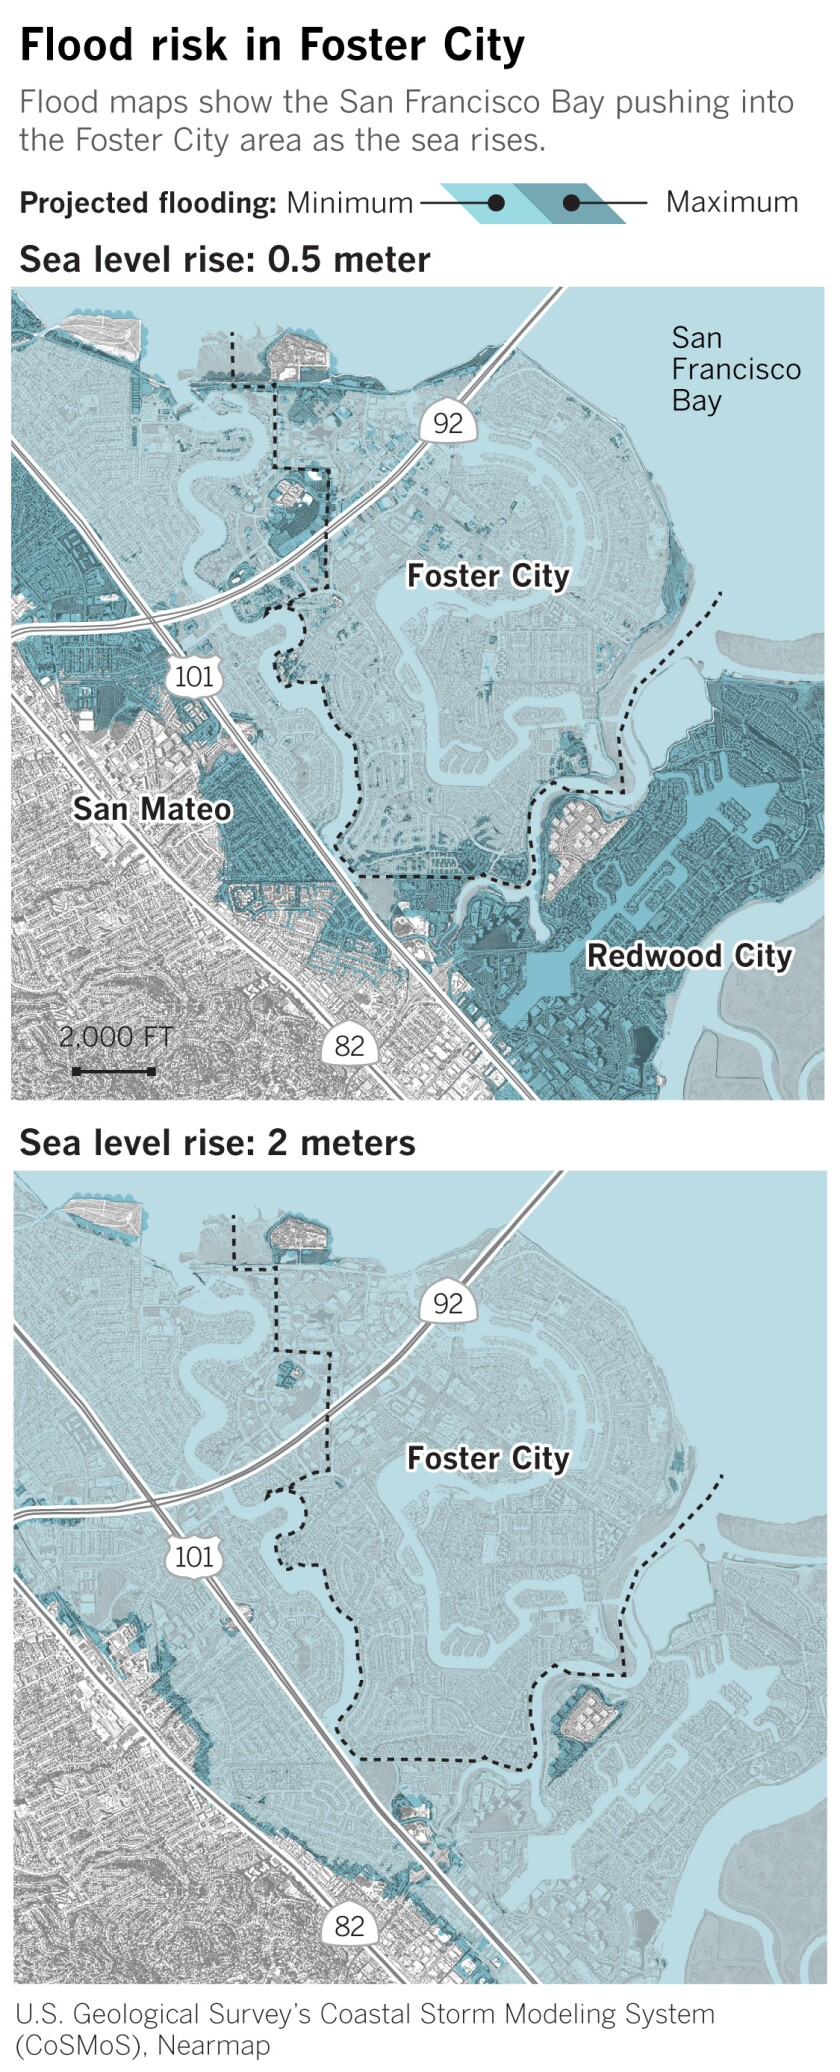 Flood risk in Foster City